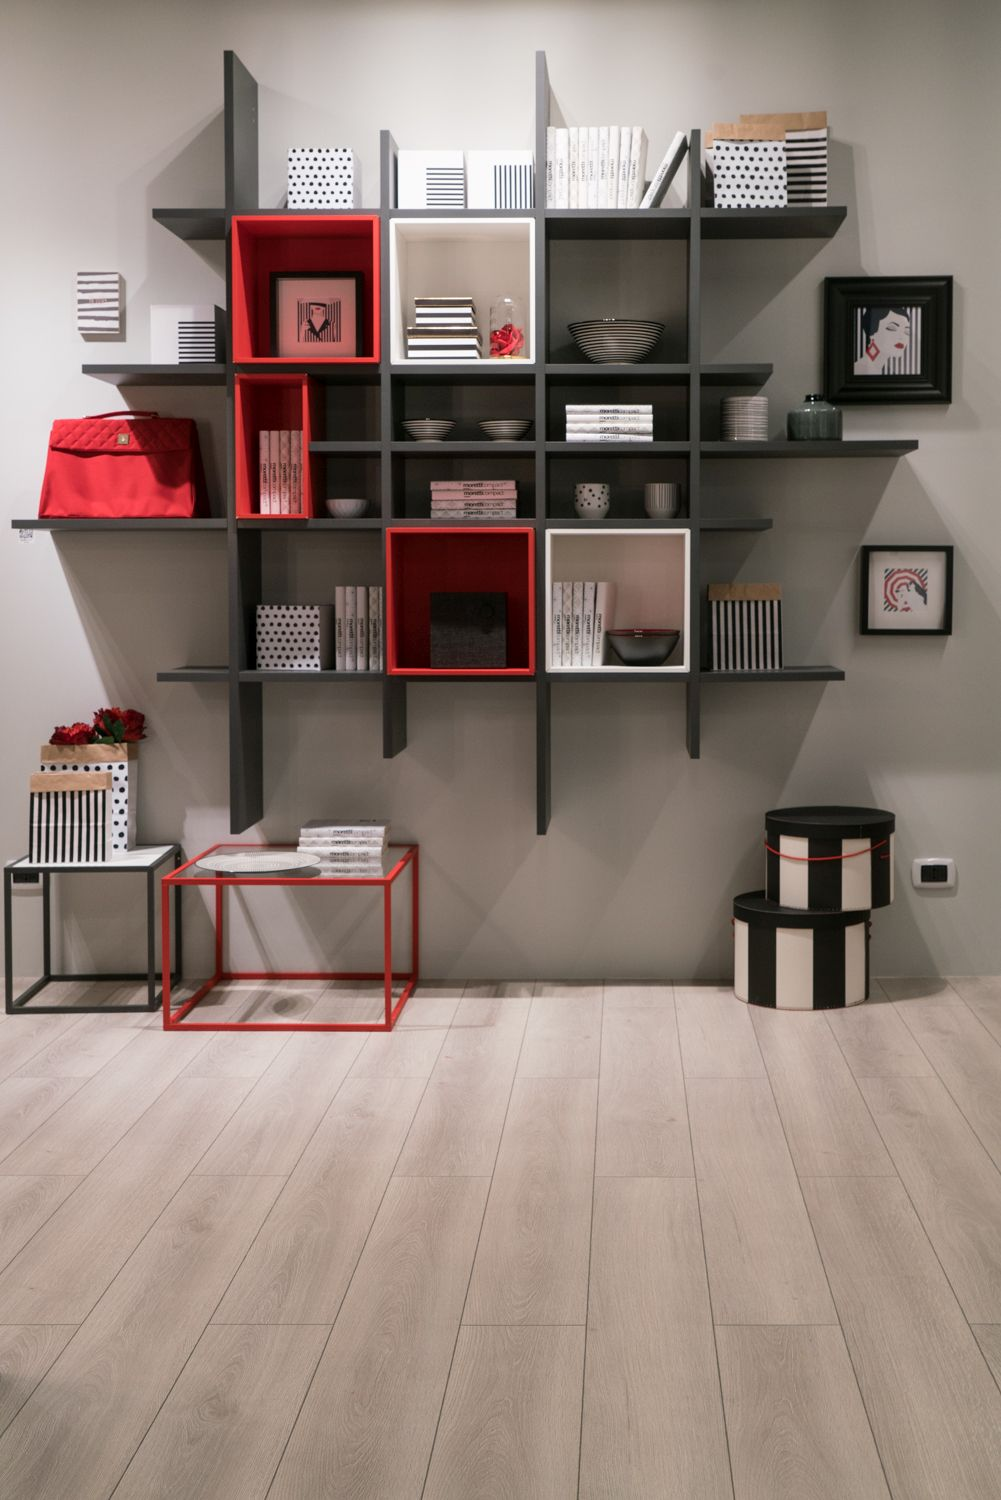 This is a very interesting and eye-catching shelving unit which combines several different colors and shapes